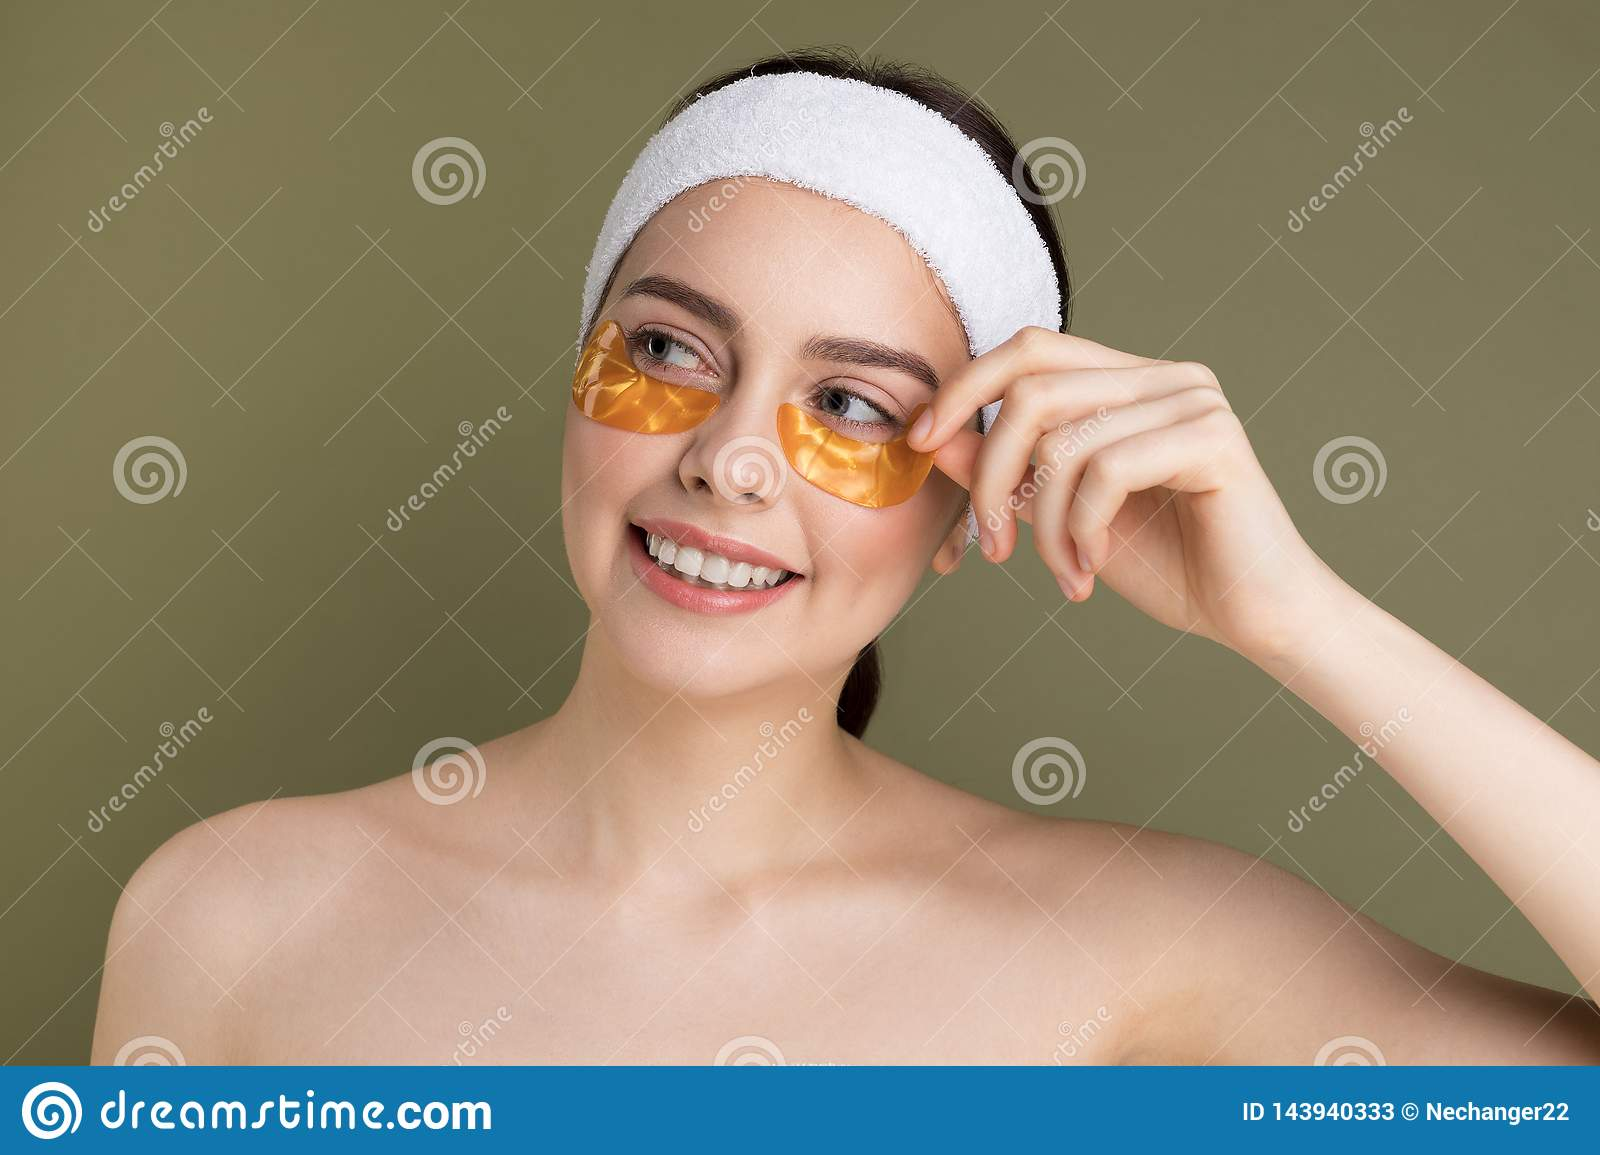 Young beautiful woman with natural make up removing gold patch from under her eye